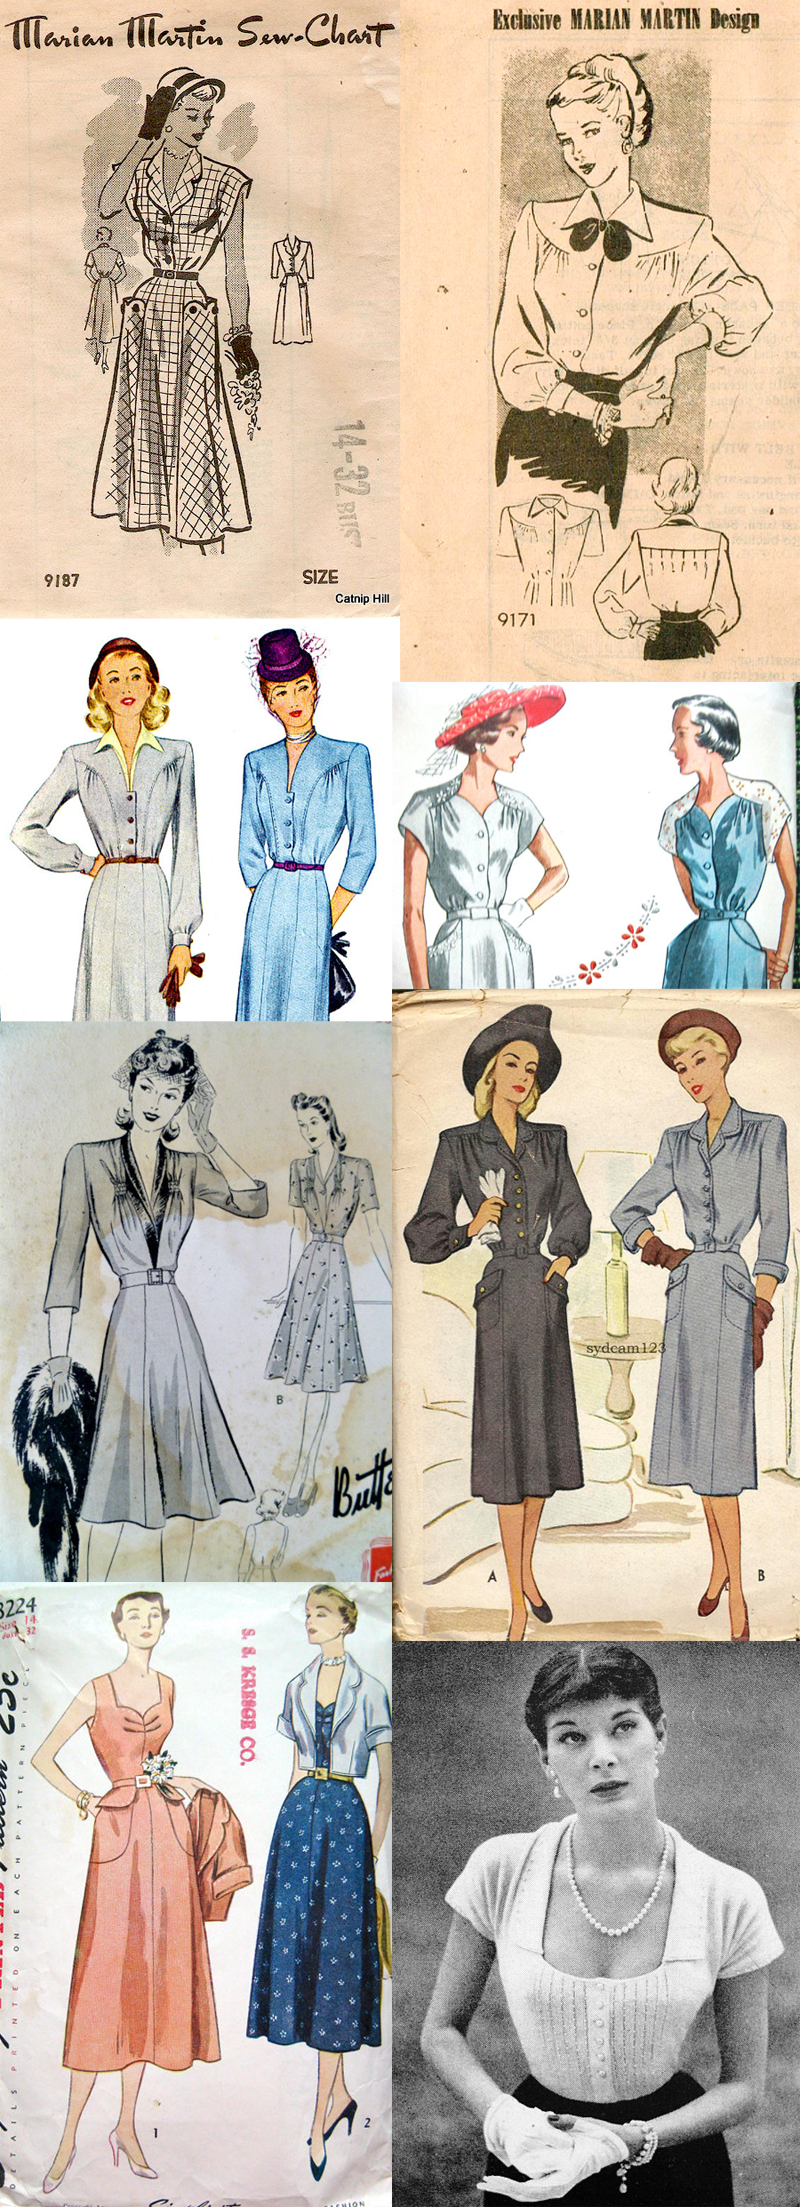 1.  Marian Martin 9187  / 2.  Marian Martin 9171  / 3.  Simplicity 2737  / 4.  McCall 6172  / 5.  Butterick 9417  / 6.  McCall 6999  / 7.  Simplicity 3224  / 8.  Vintage 40s knitting pattern (PDF)